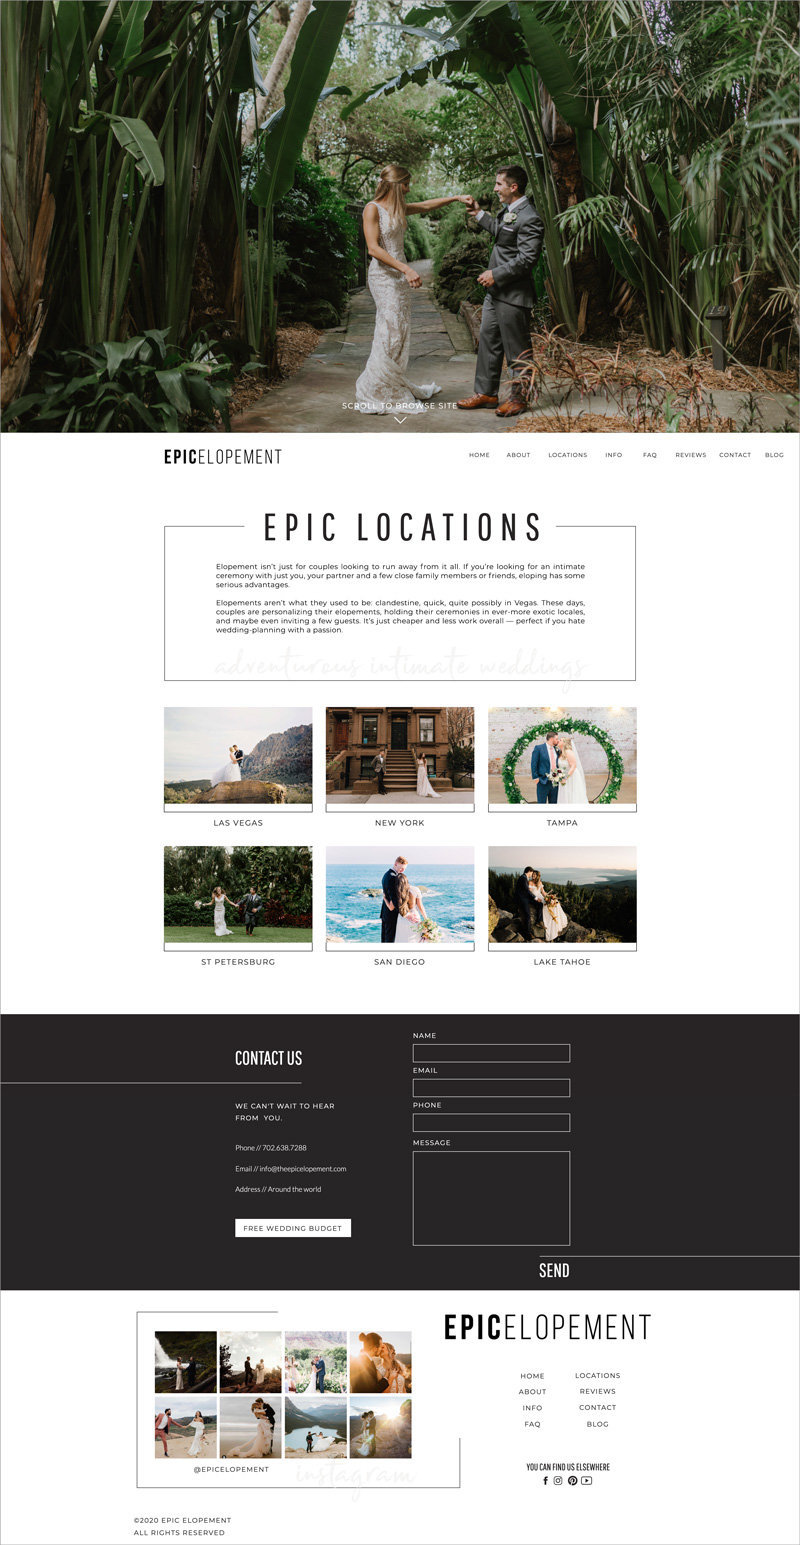 epic-elopement-locations